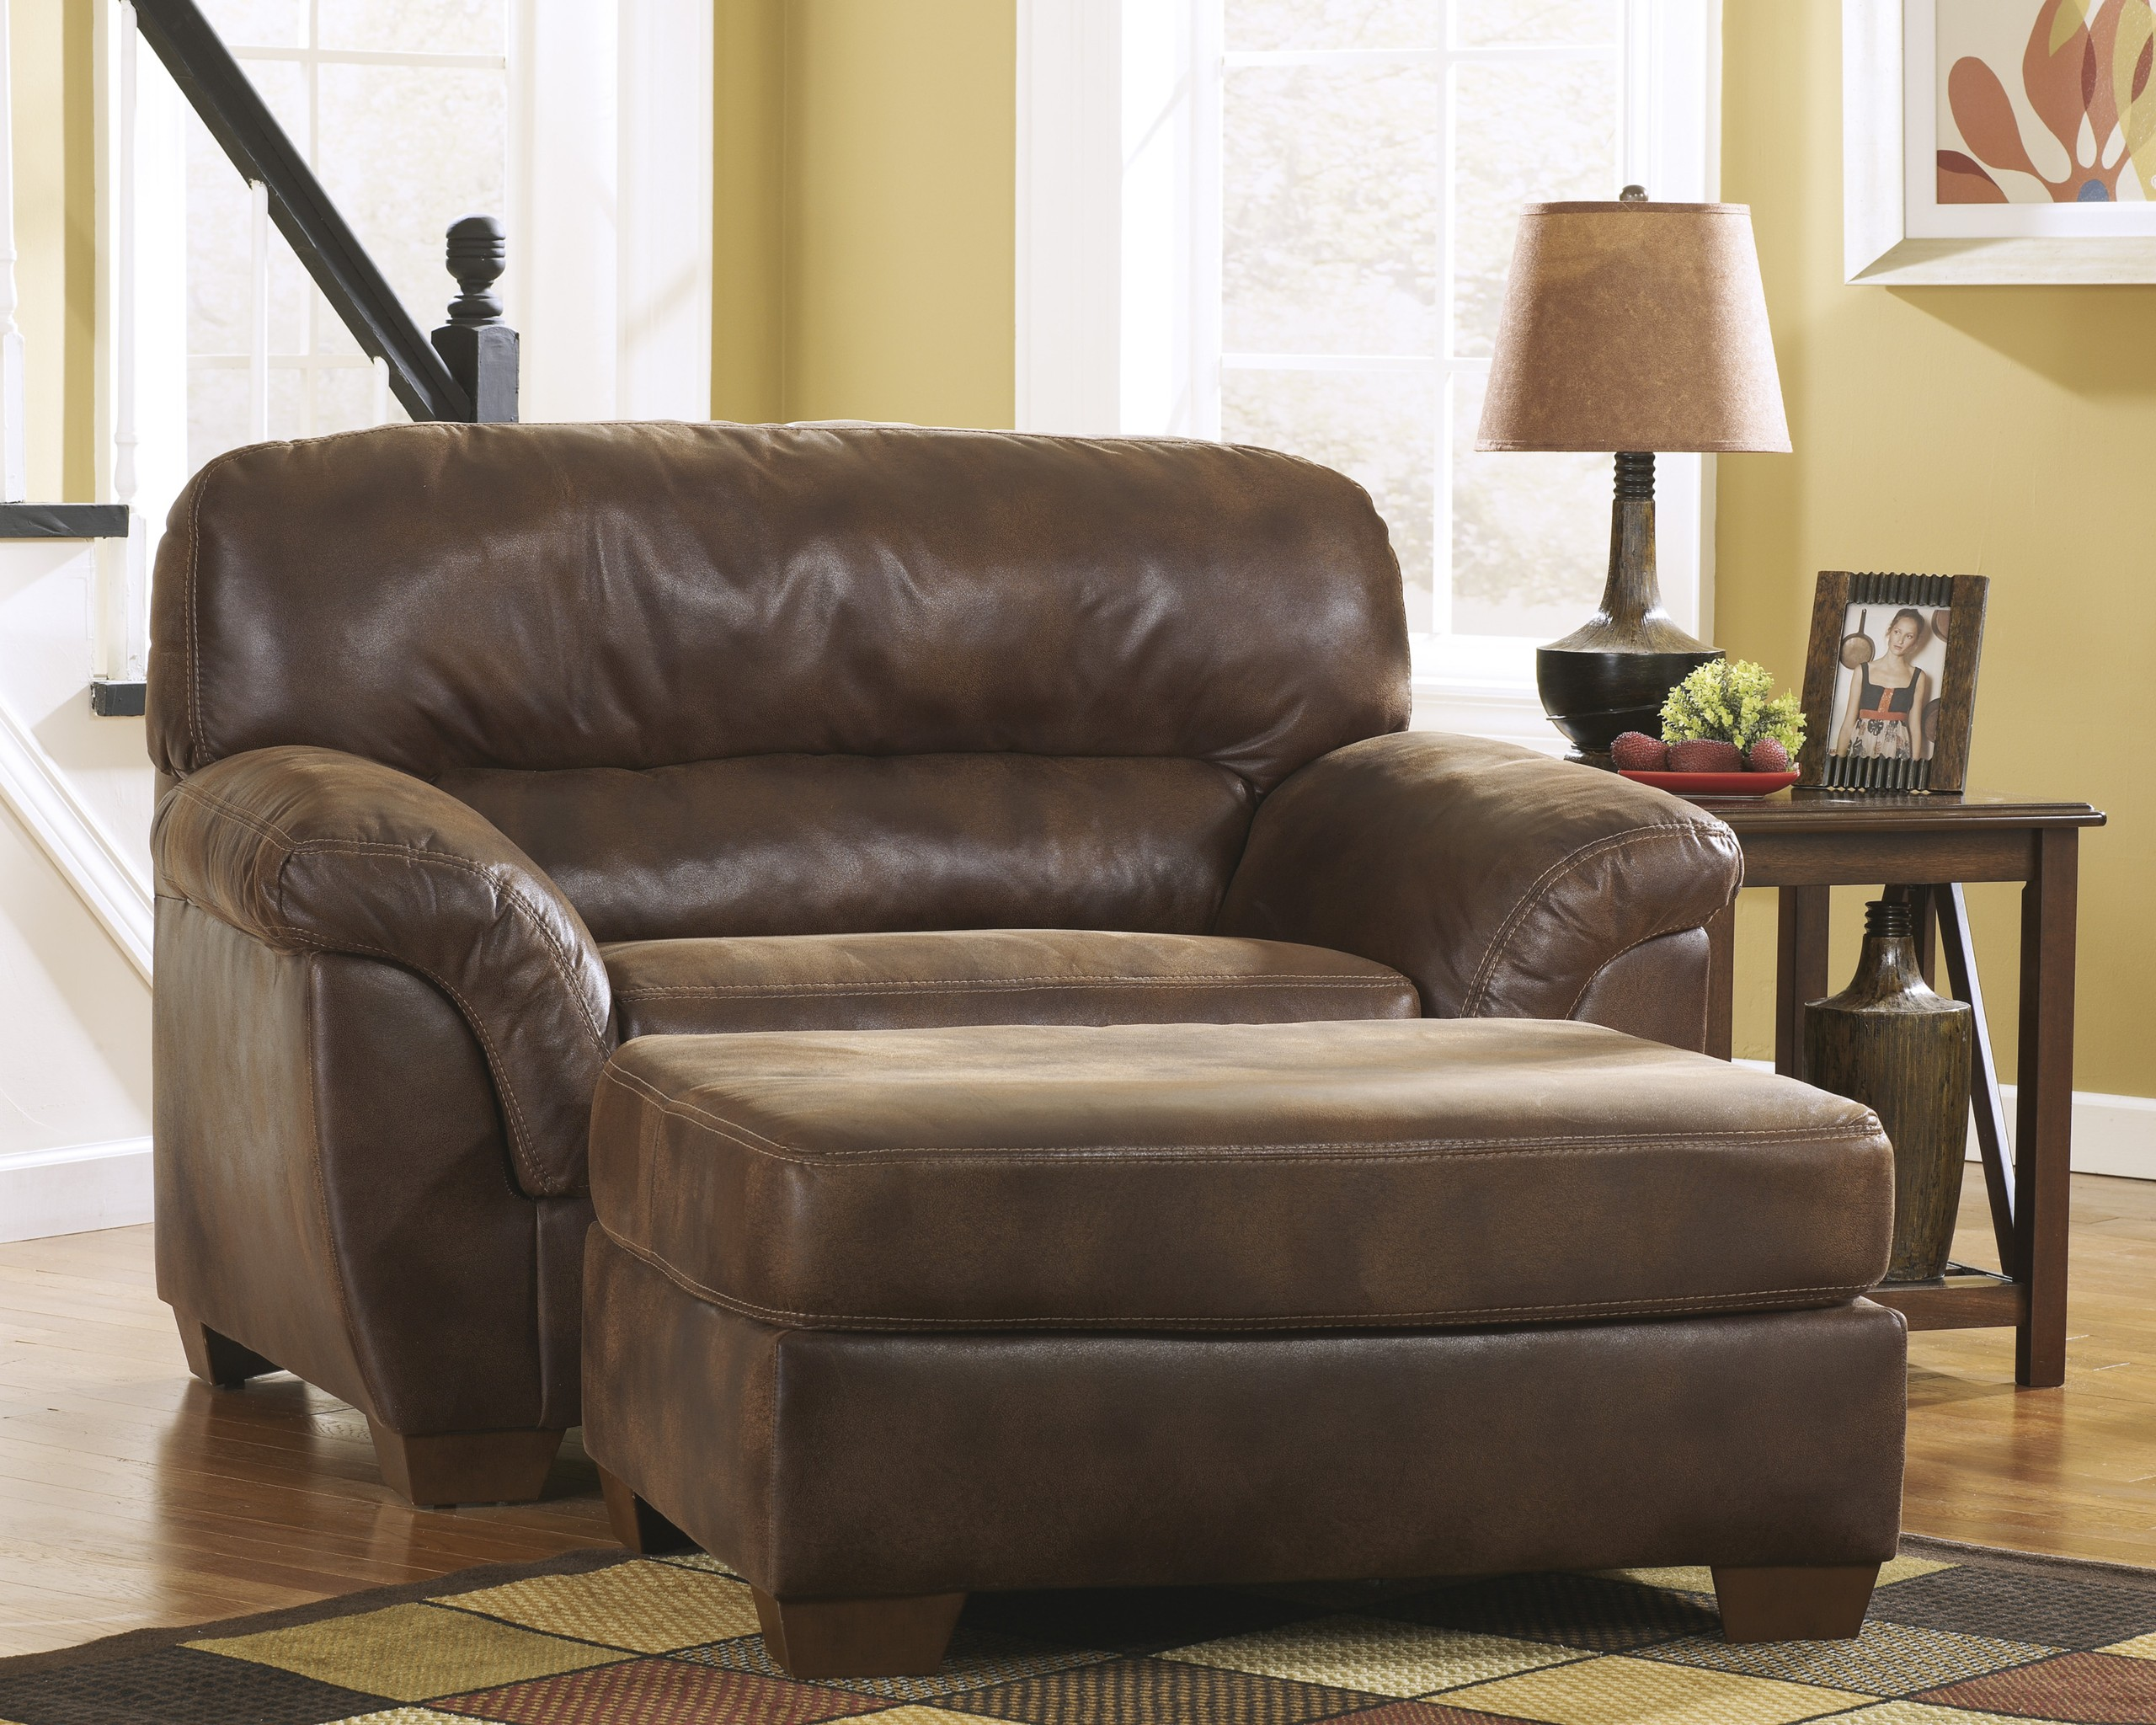 Charmant Leather Chair And A Half With Ottoman